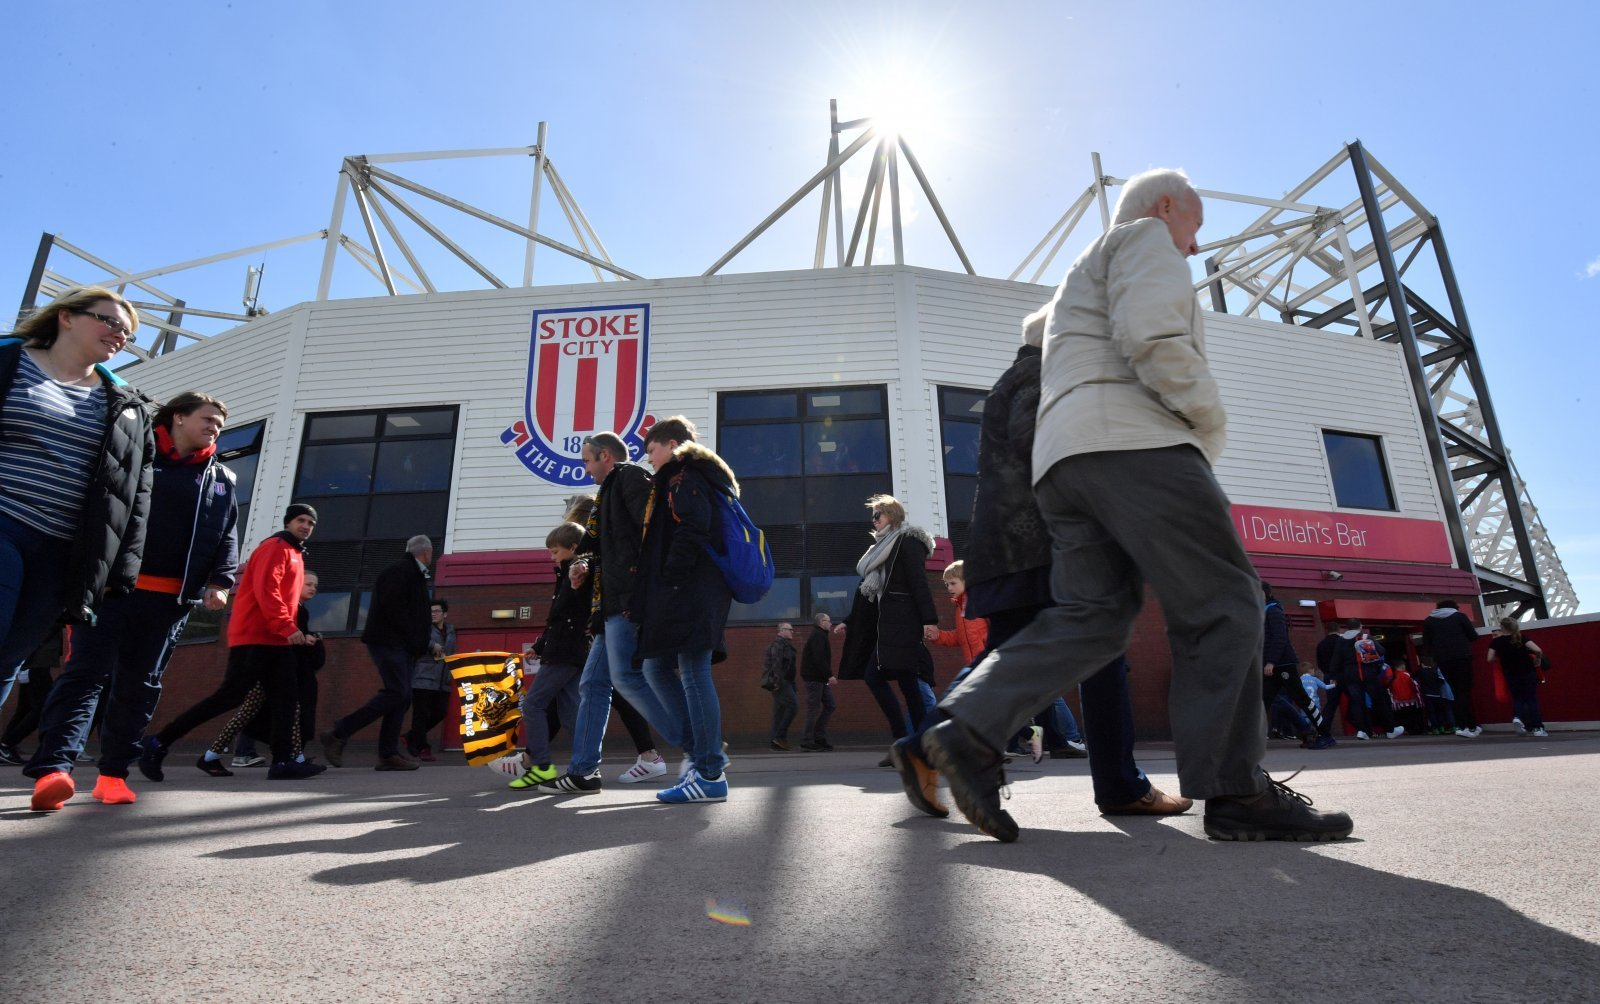 Keep or sell? The Stoke players whose careers at the club